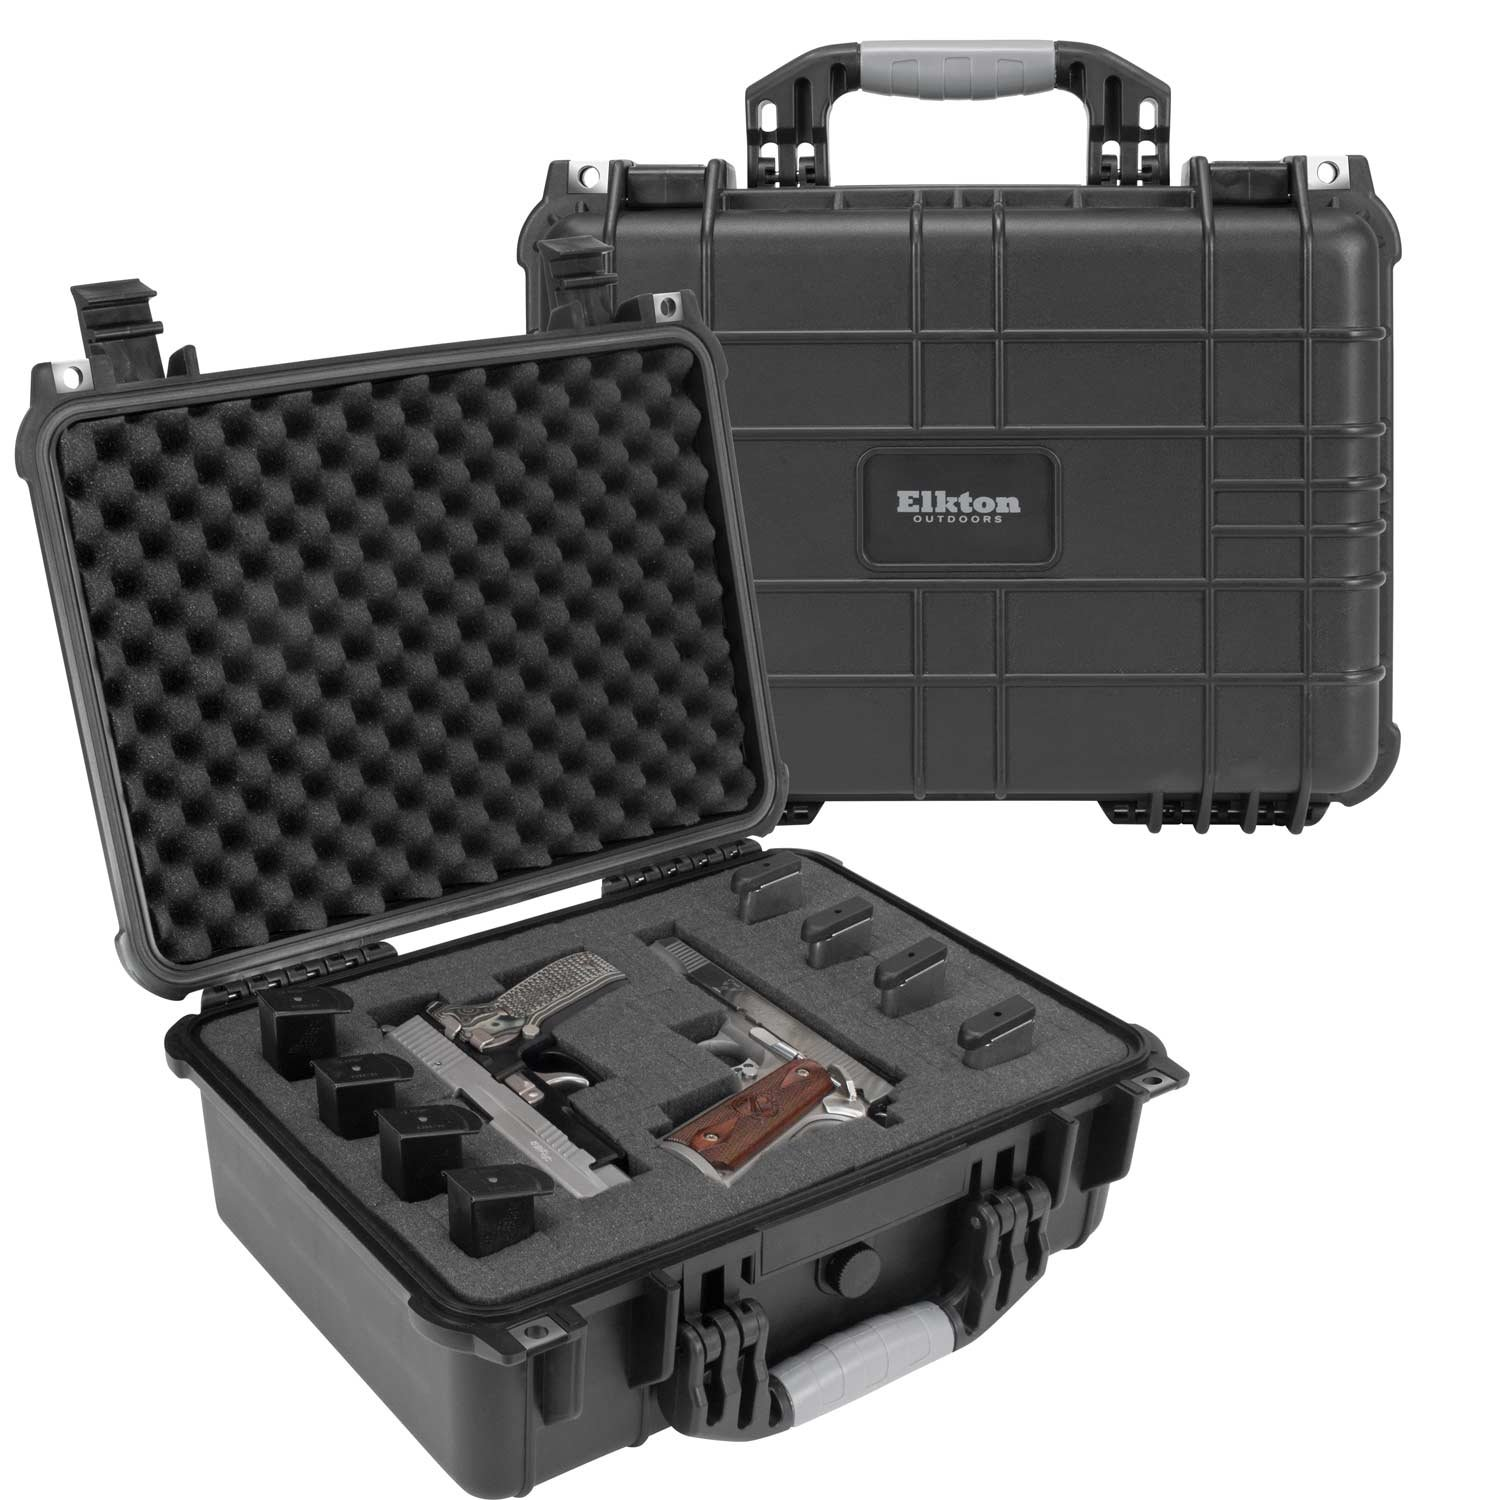 Elkton Outdoors Hard Gun Case: Fully Customizable Pistol Case: Holds 4 Handguns and 8 Magazines: Crush Resistant & Waterproof! by Elkton Outdoors (Image #1)